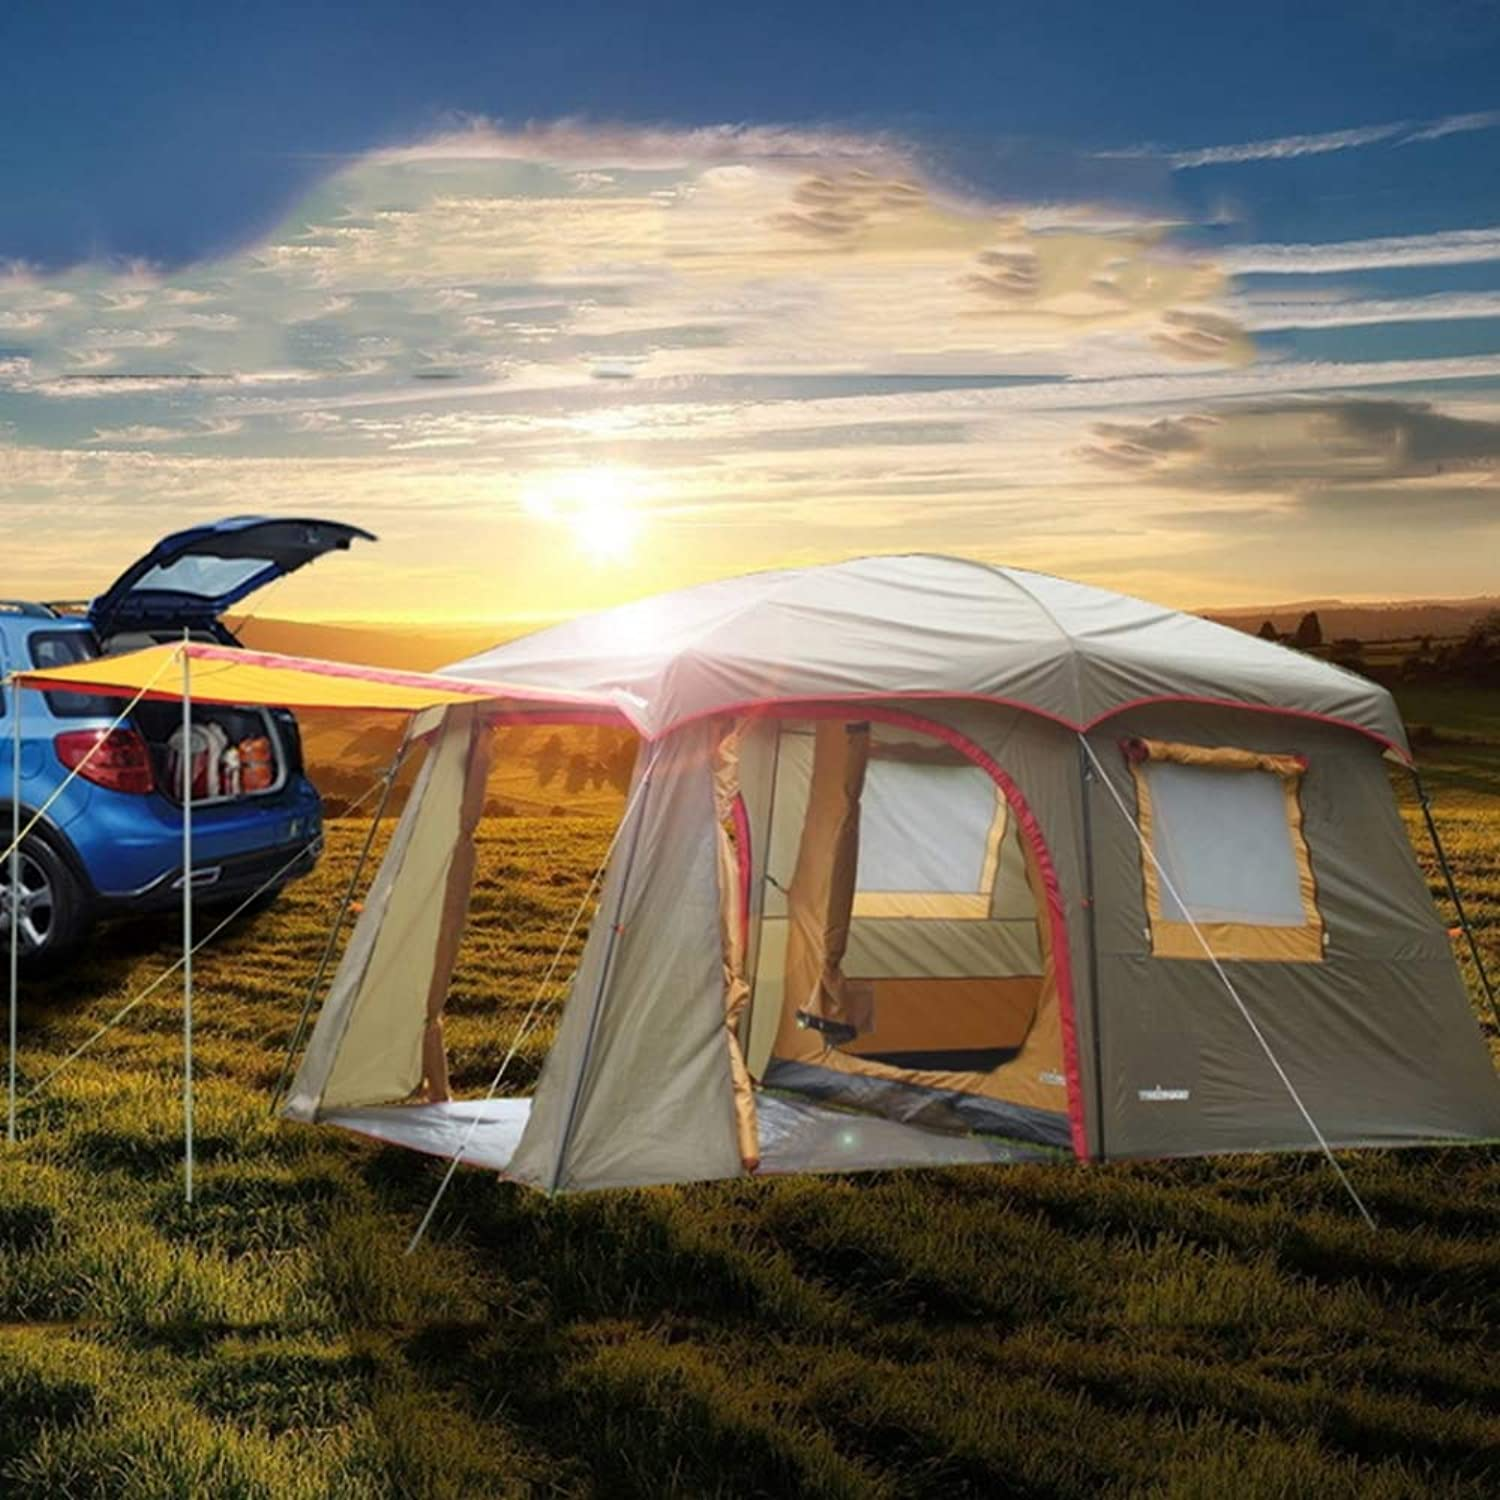 Group Tunnel Tent with Sun Canopy 5000 mm Water Column Festival Camping Backpacking Trekking Waterproof Outdoor Dome Tent 34 Persons Windproof Snow Shelter